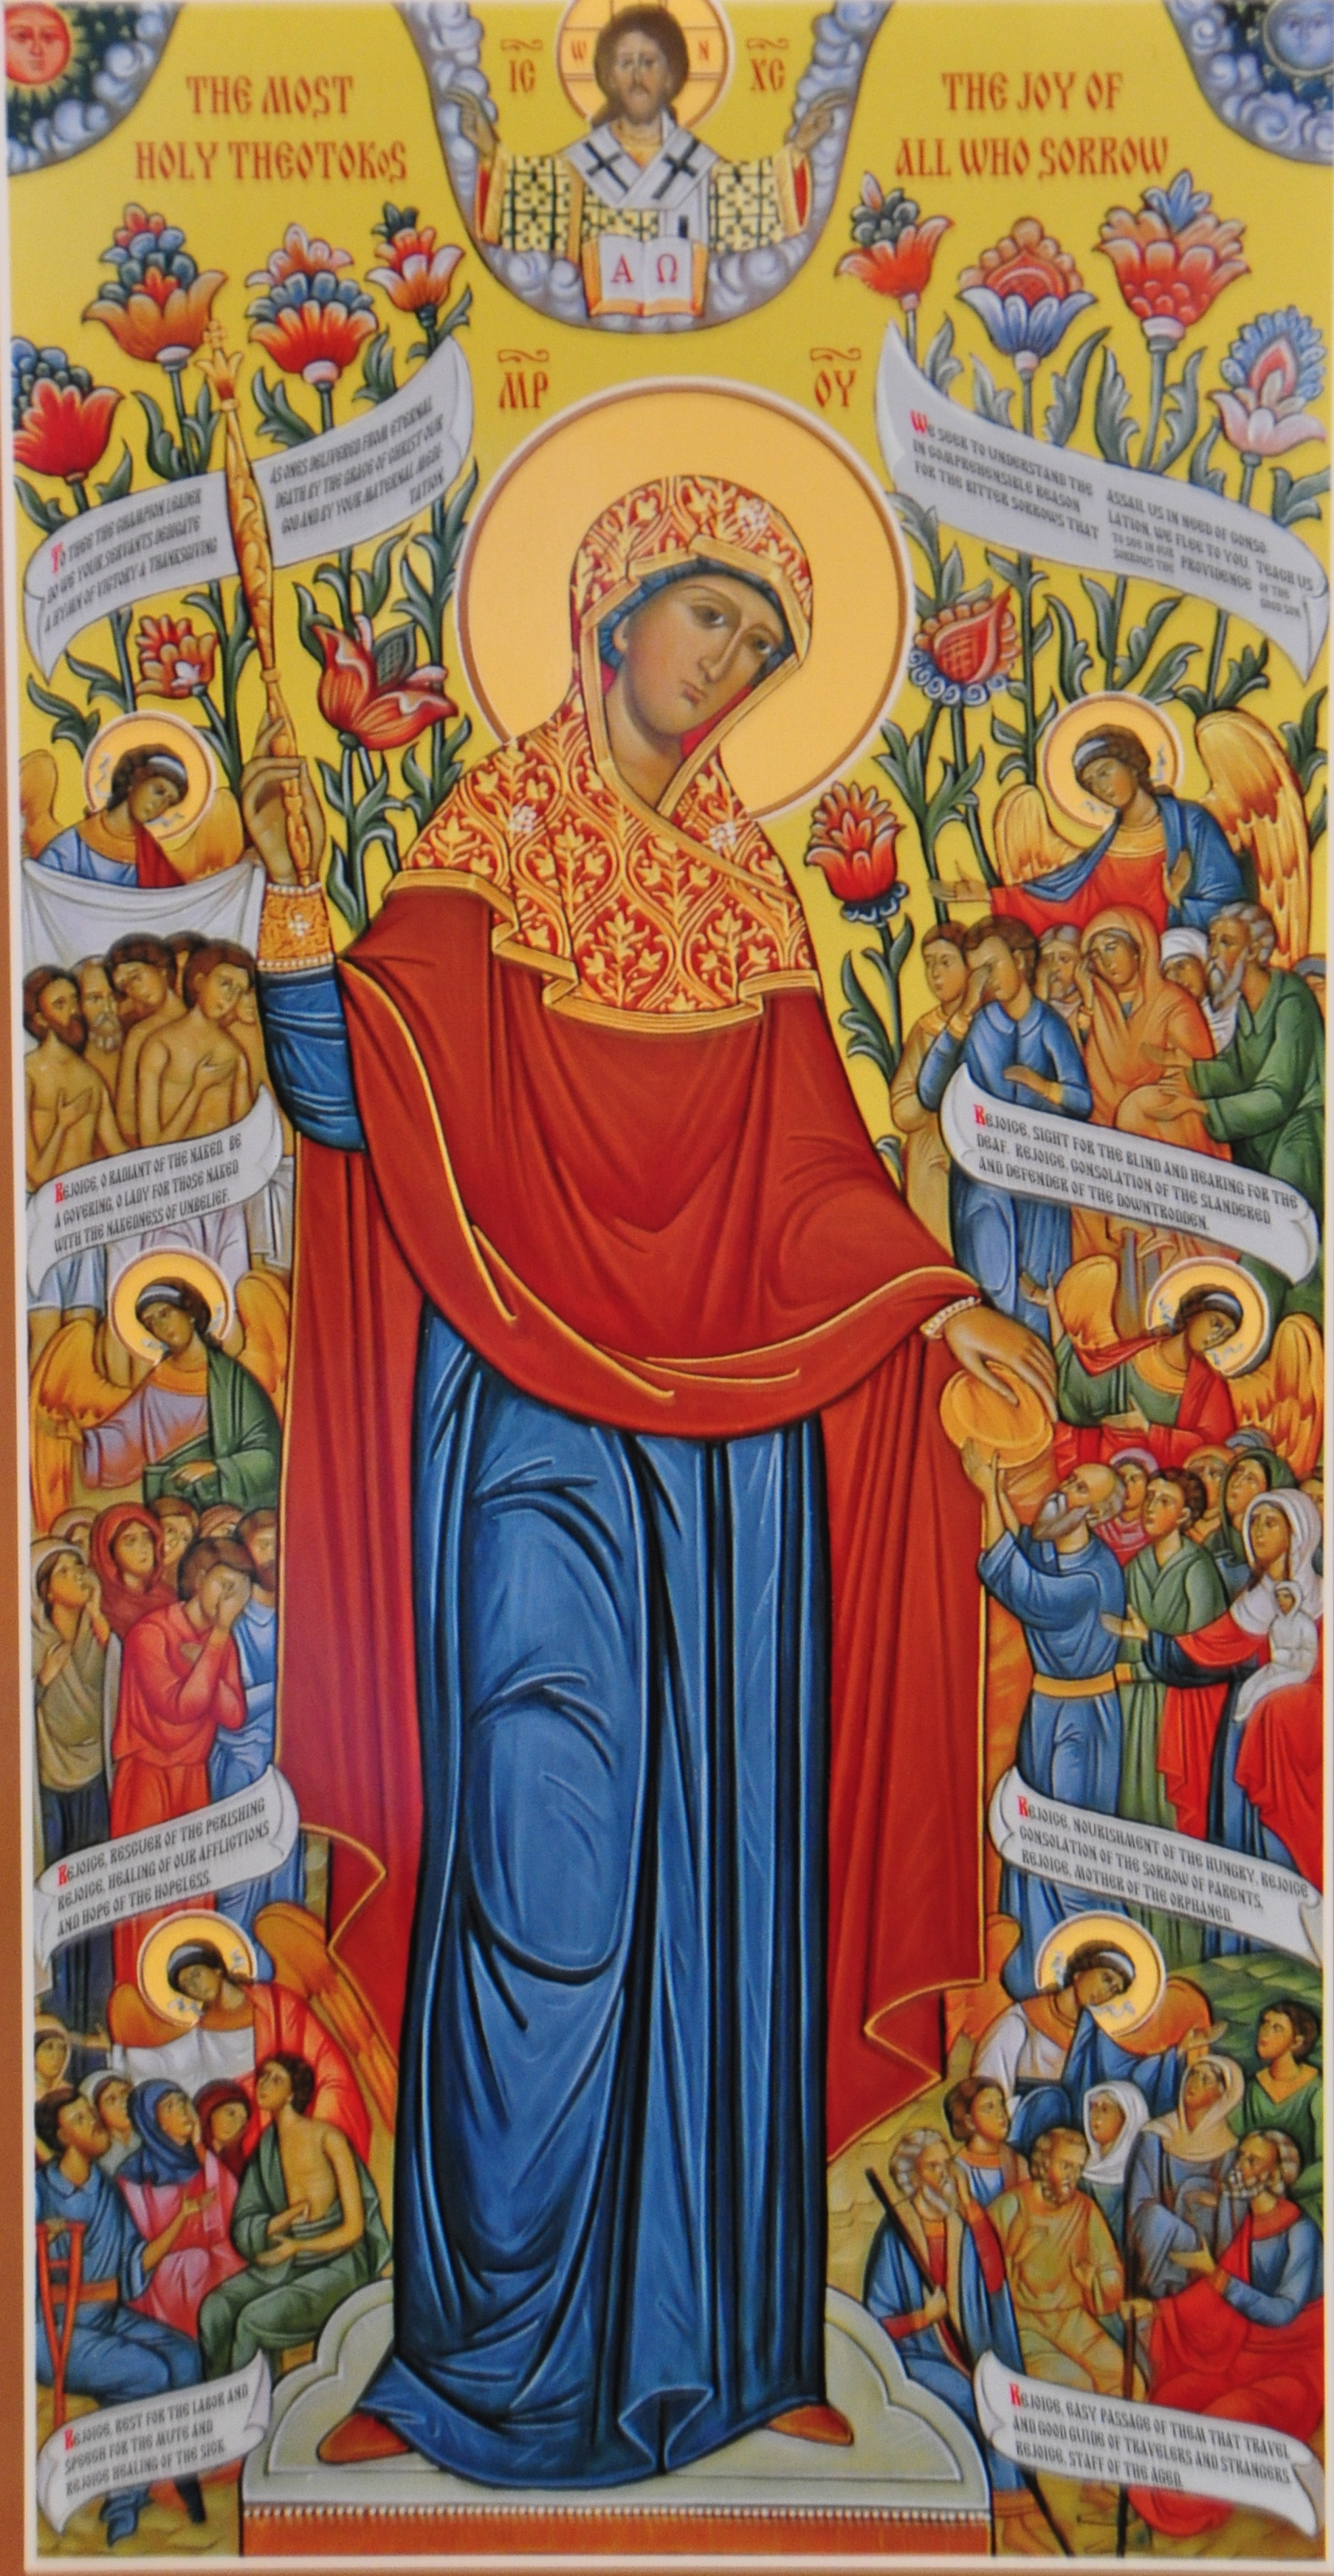 Theotokos Joy of All Who Sorrow Icon - by Ted, 28 Oct 2013 (10545663816_73d530c424_o.jpg) (CC BY-SA 2.0 [https://creativecommons.org/licenses/by-sa/2.0/]), via Flickr